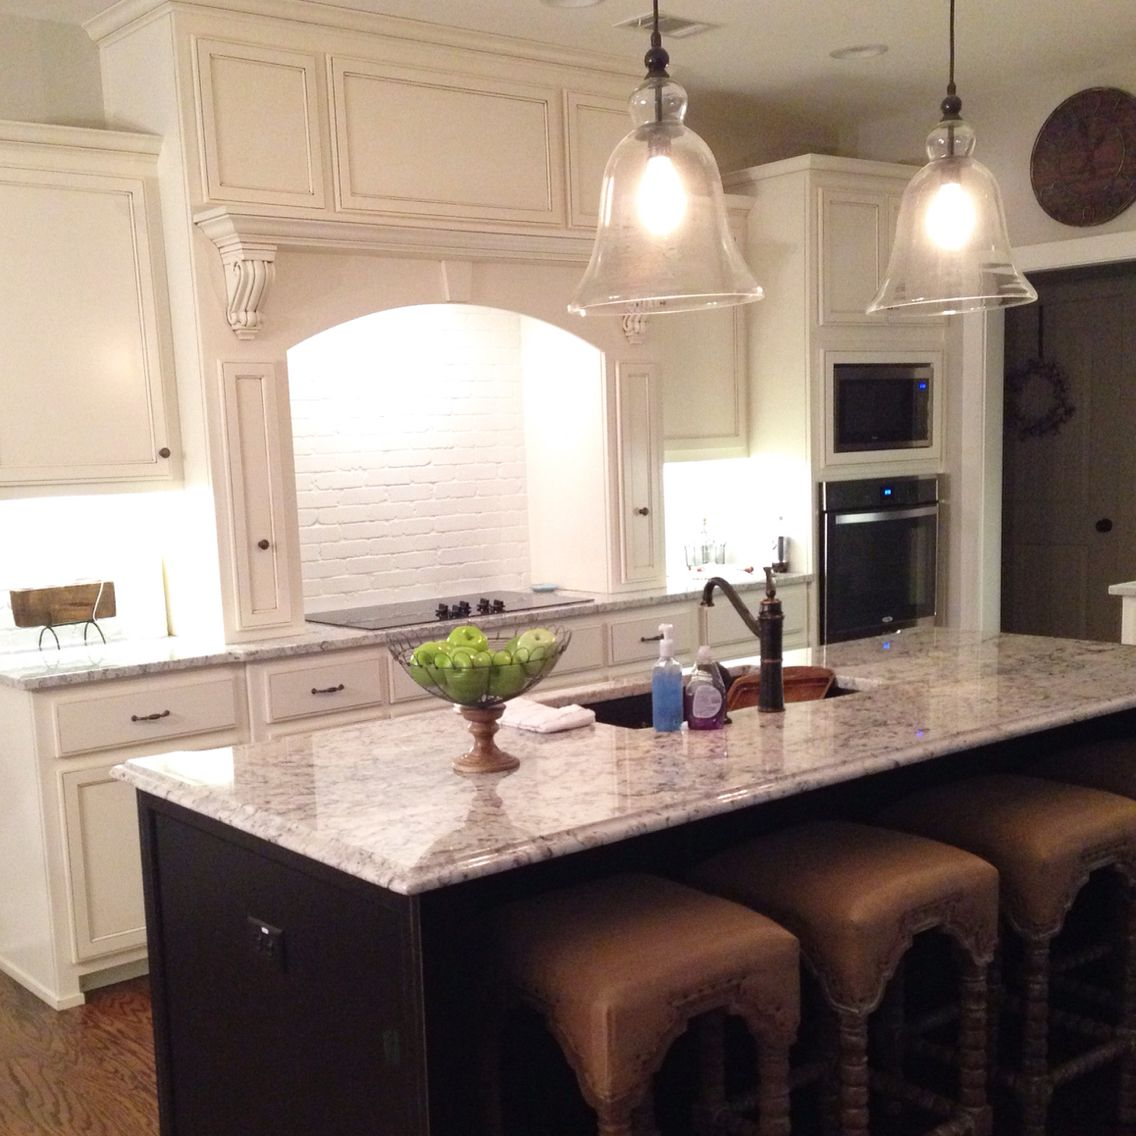 White Ice Granite Kitchen Kitchen With Painted Brick Backsplash West Highland White Cabinets